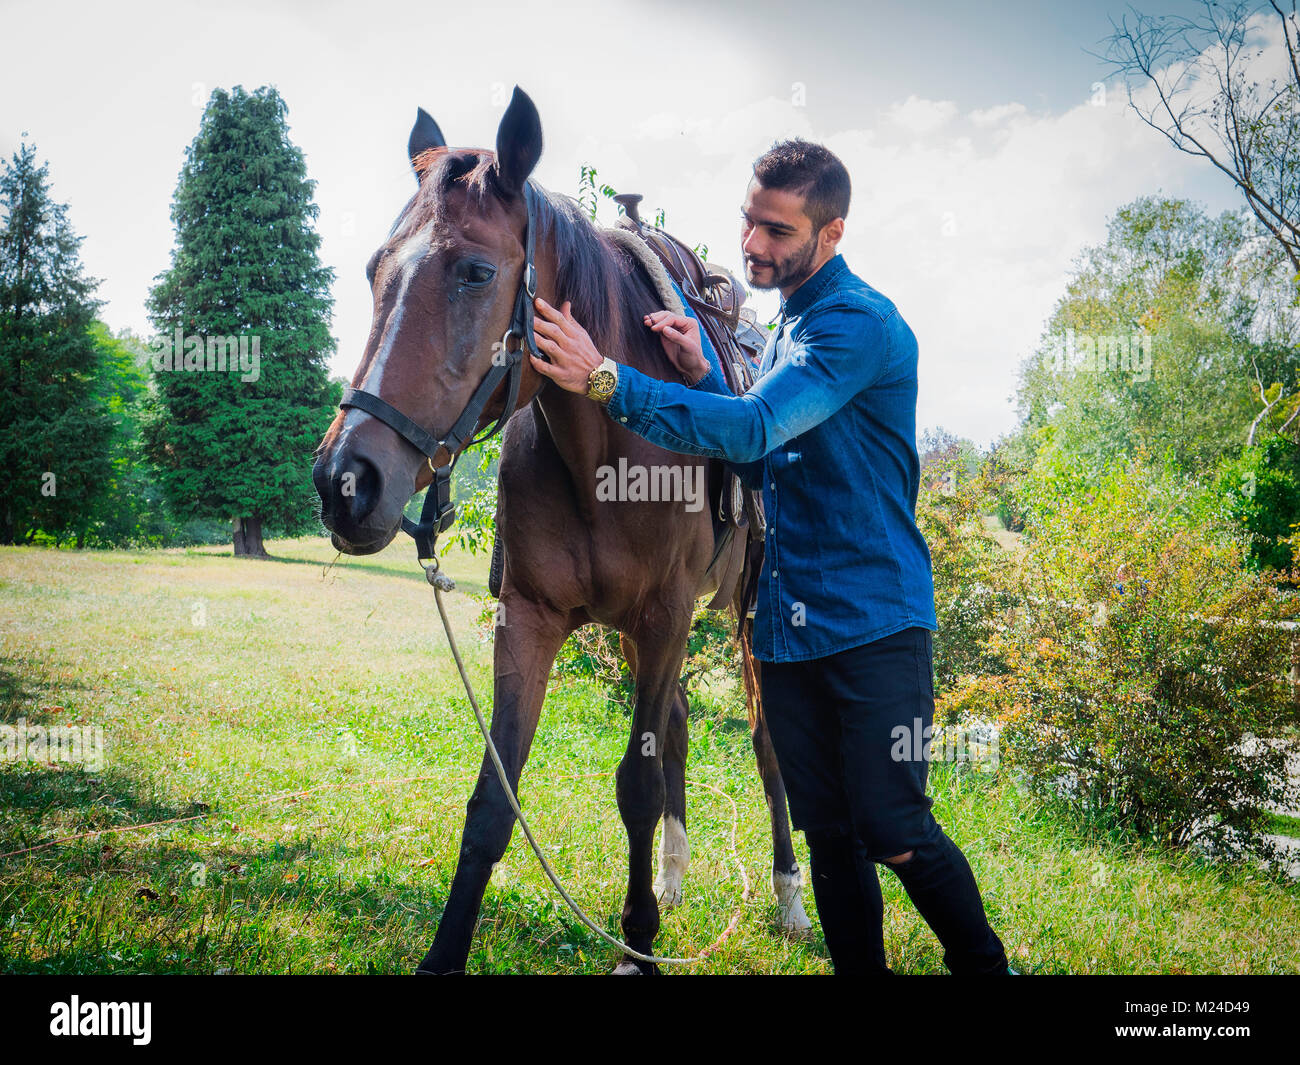 Handsome man by horse - Stock Image